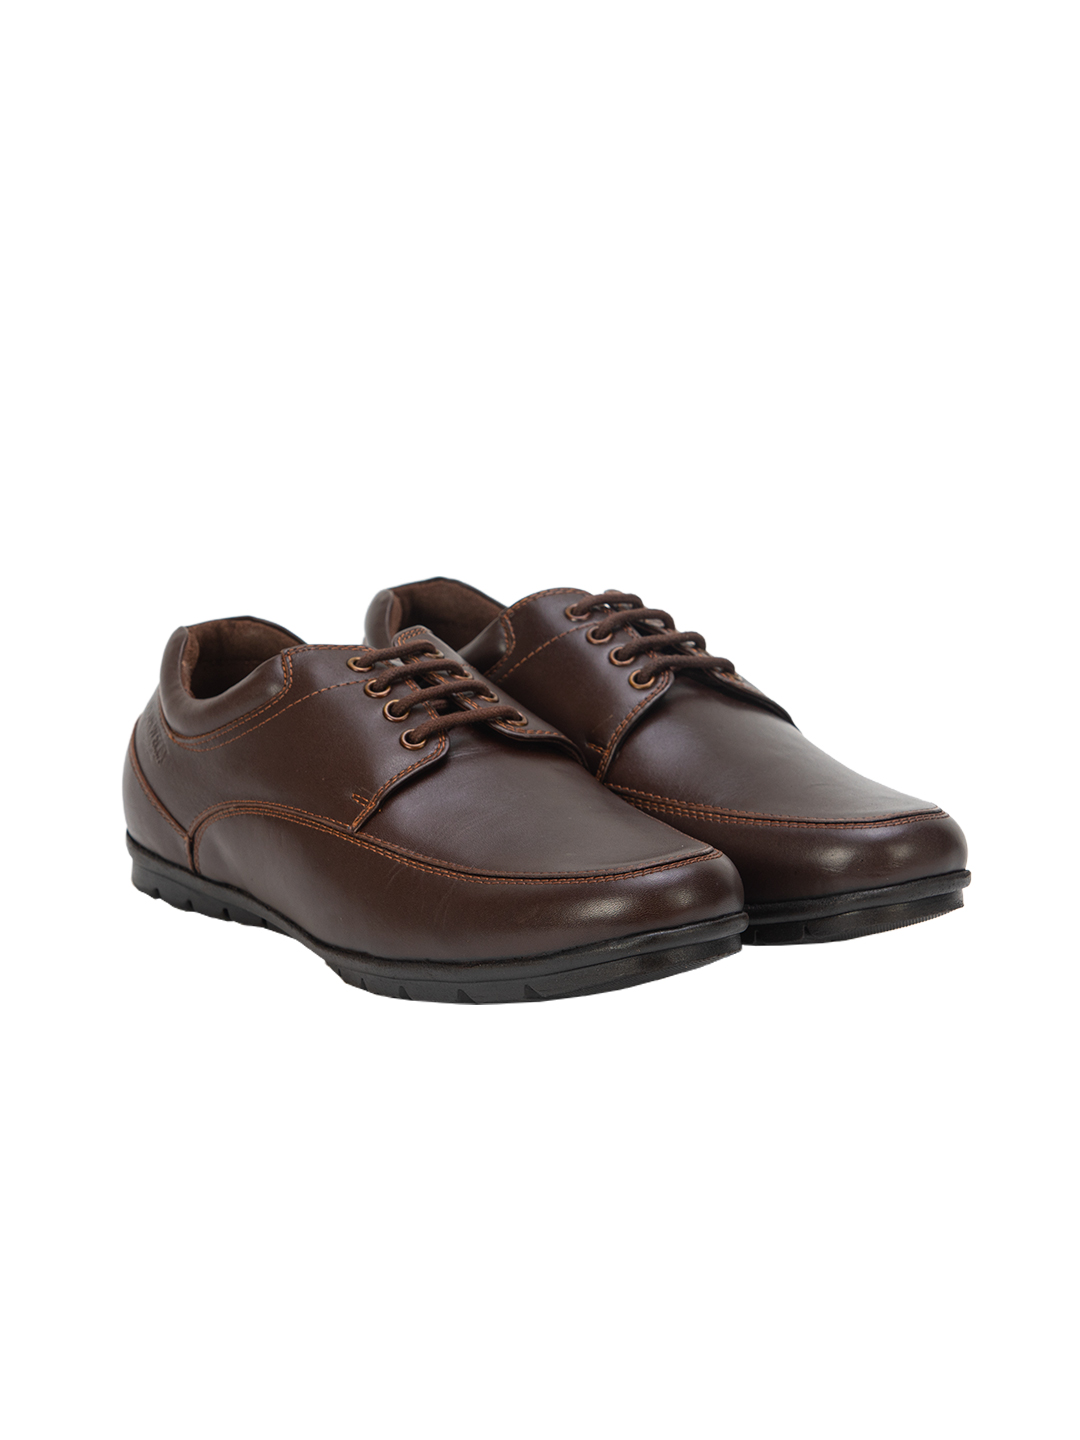 Buy Von Wellx Germany Comfort Coffee Brayden Shoes Online in Ahmedabad